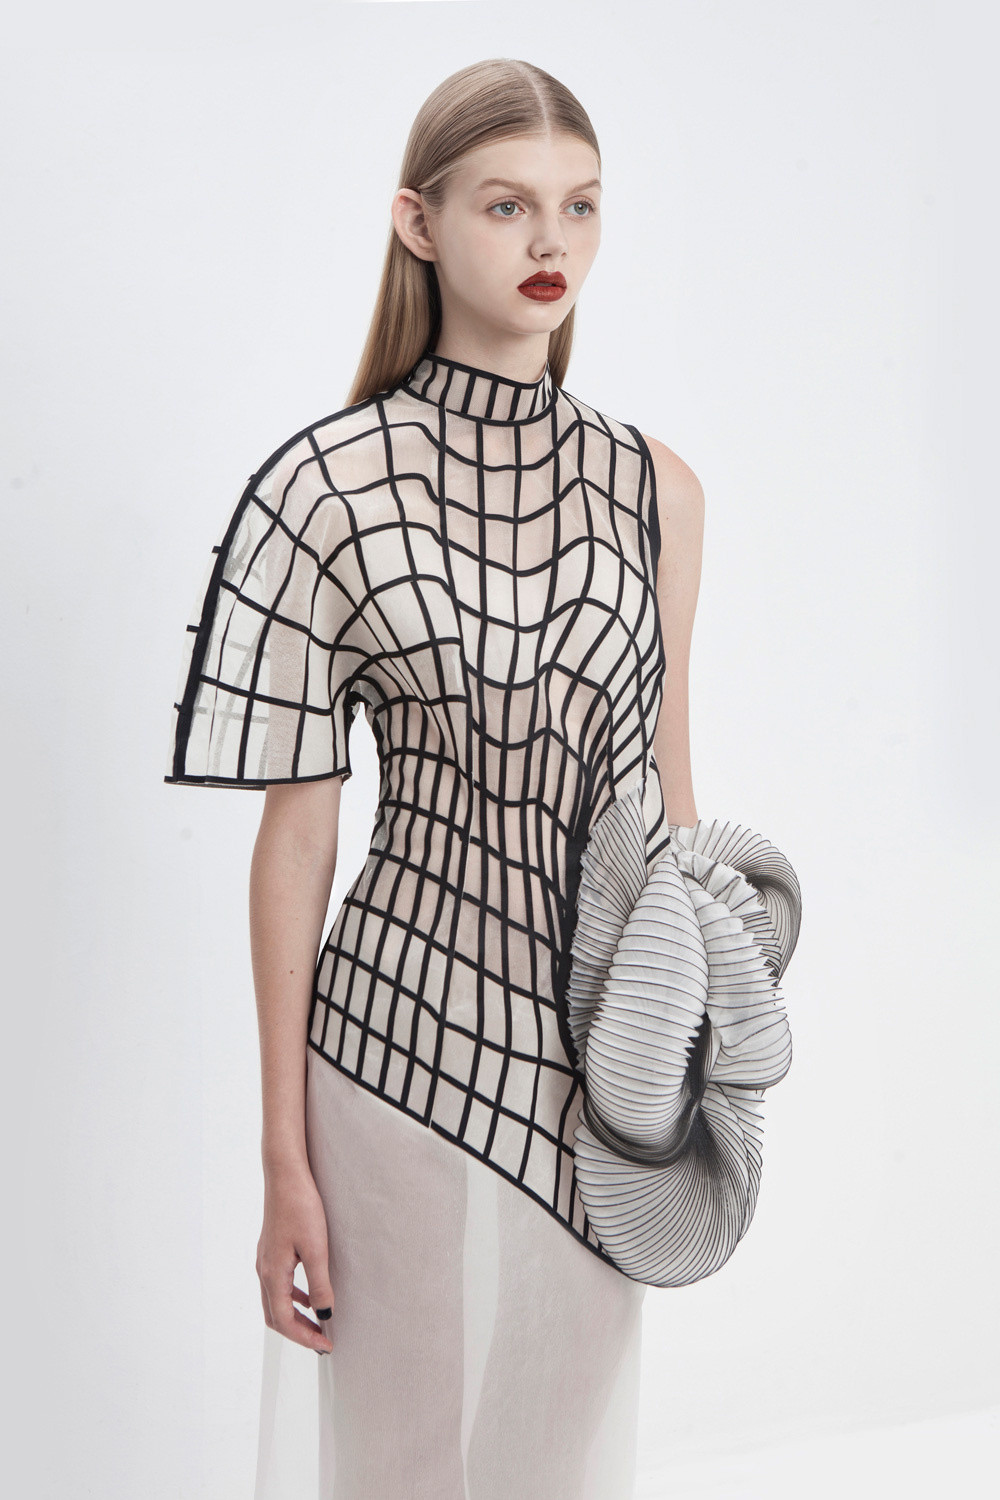 hard-copy-collection-by-noa-raviv-yellowtrace-04